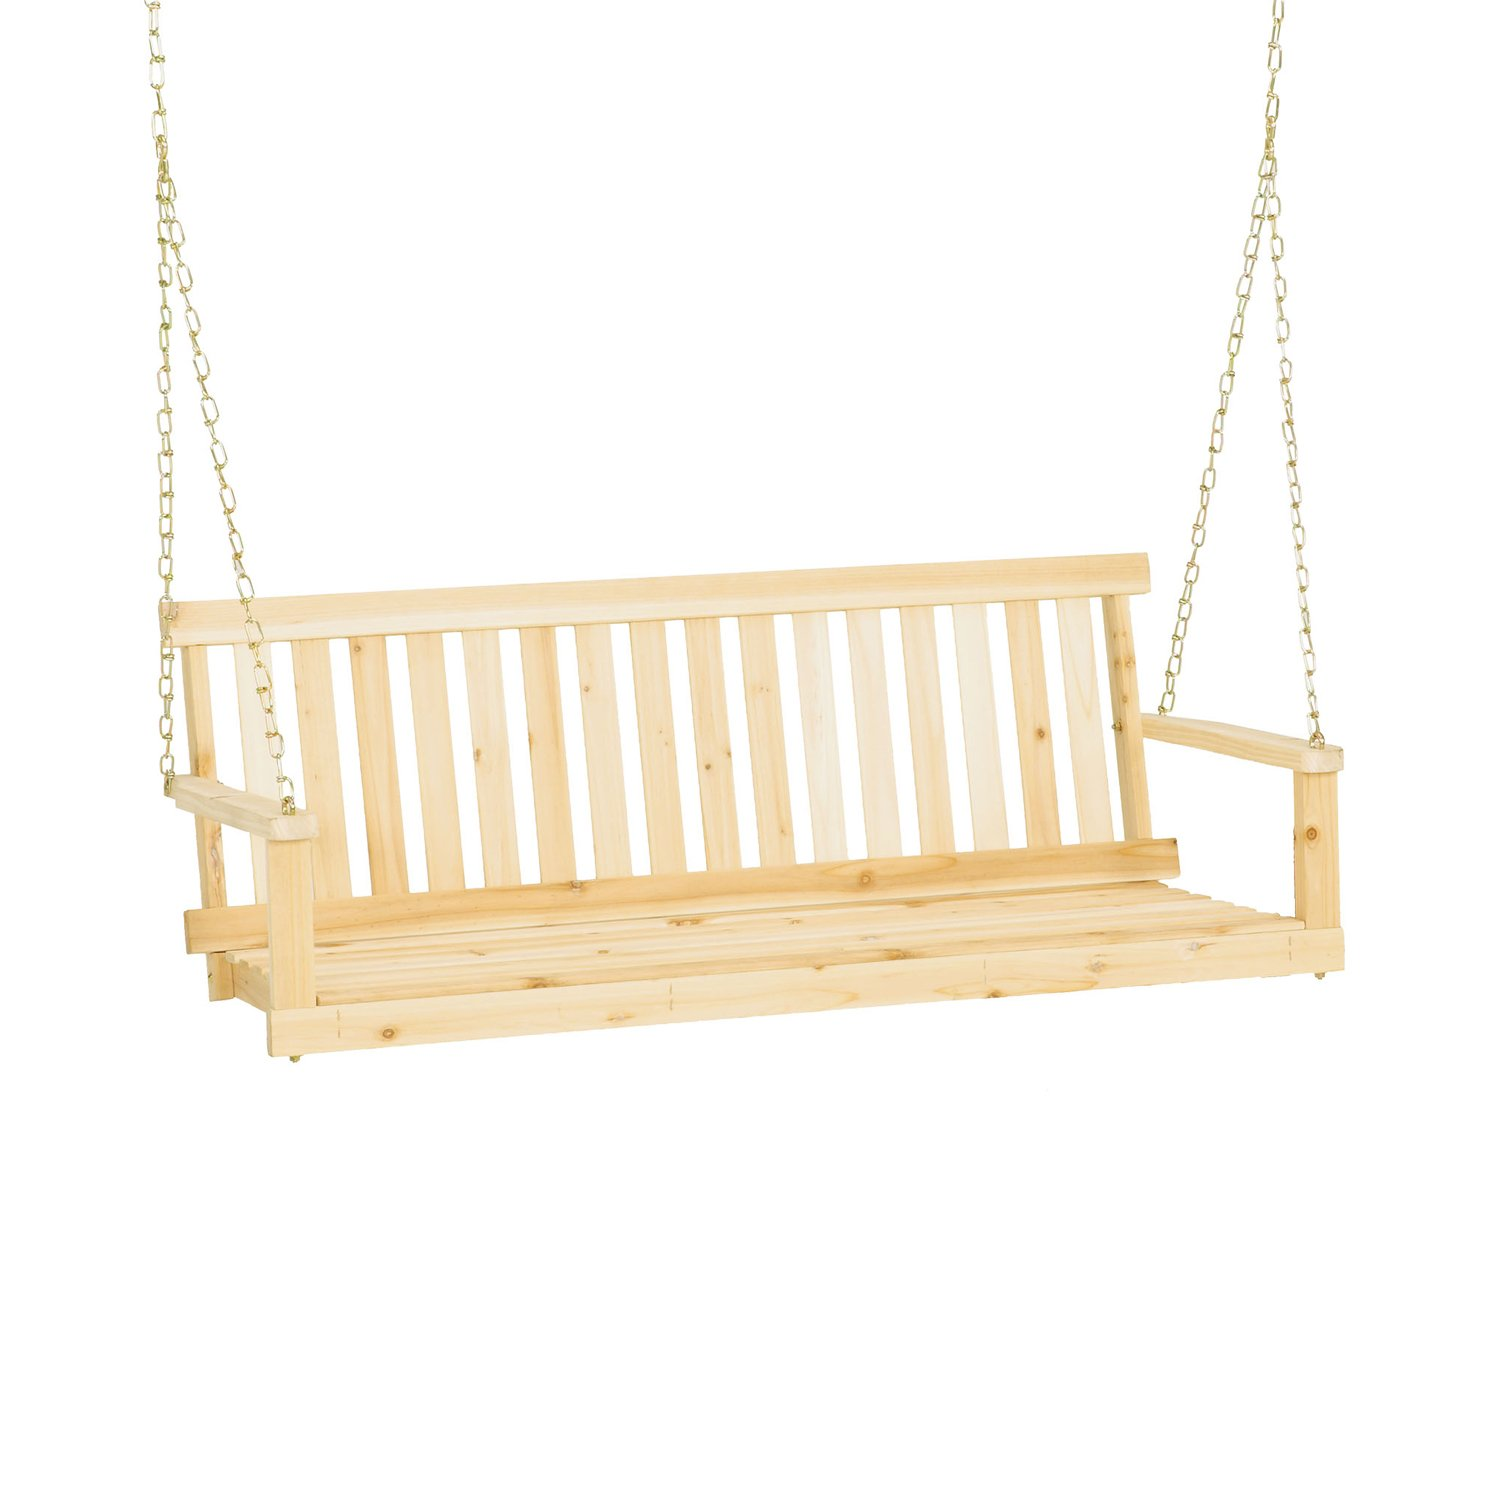 Jennings H 24 Traditional 4 39 Wooden Outdoor Porch Swing W Chain Hanging Kit Ebay